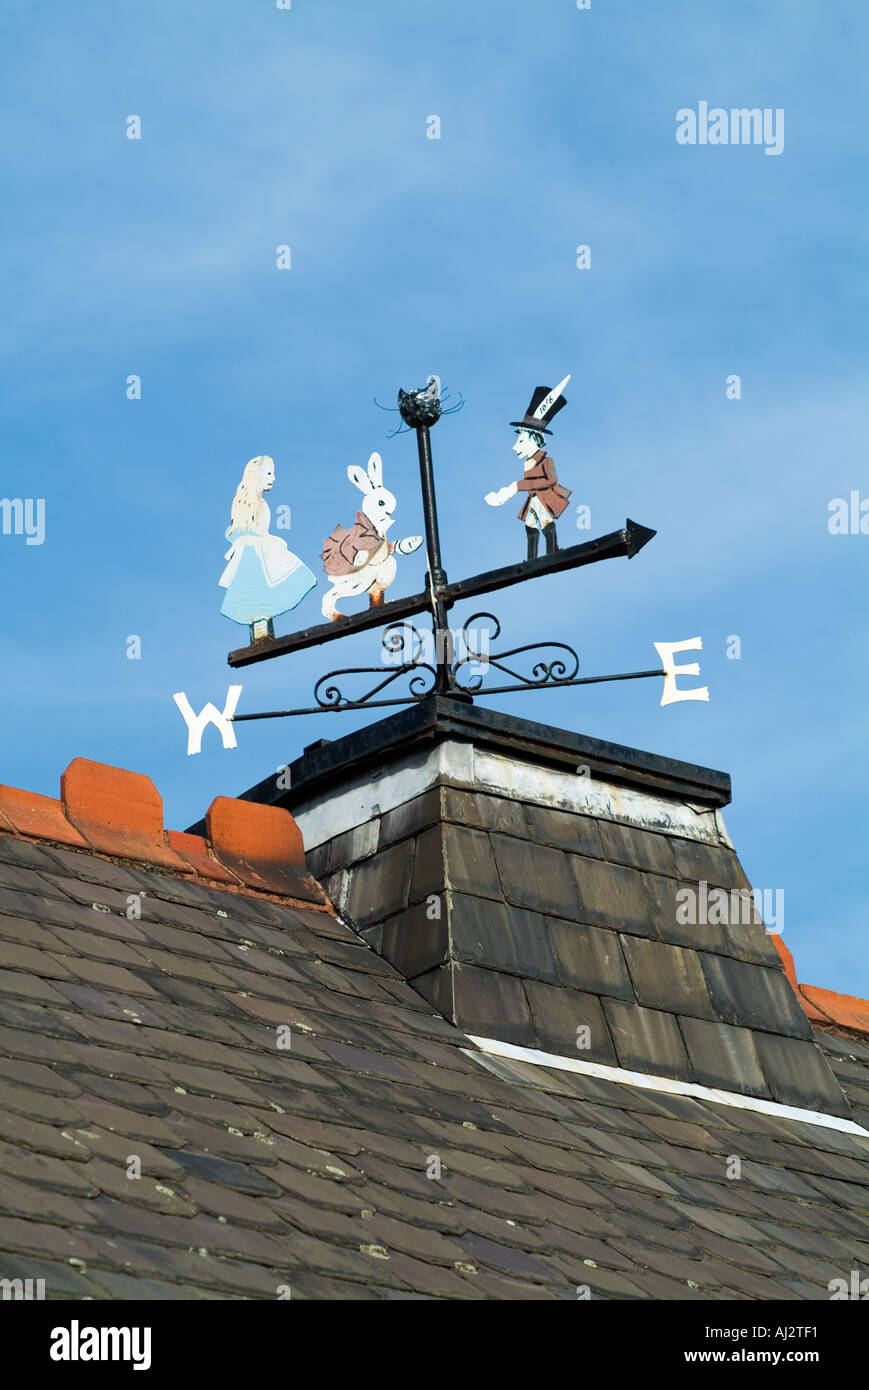 Alice in Wonderland windvane on top of the school in Daresbury Cheshire The village where Lewis Carroll lived - Stock Image